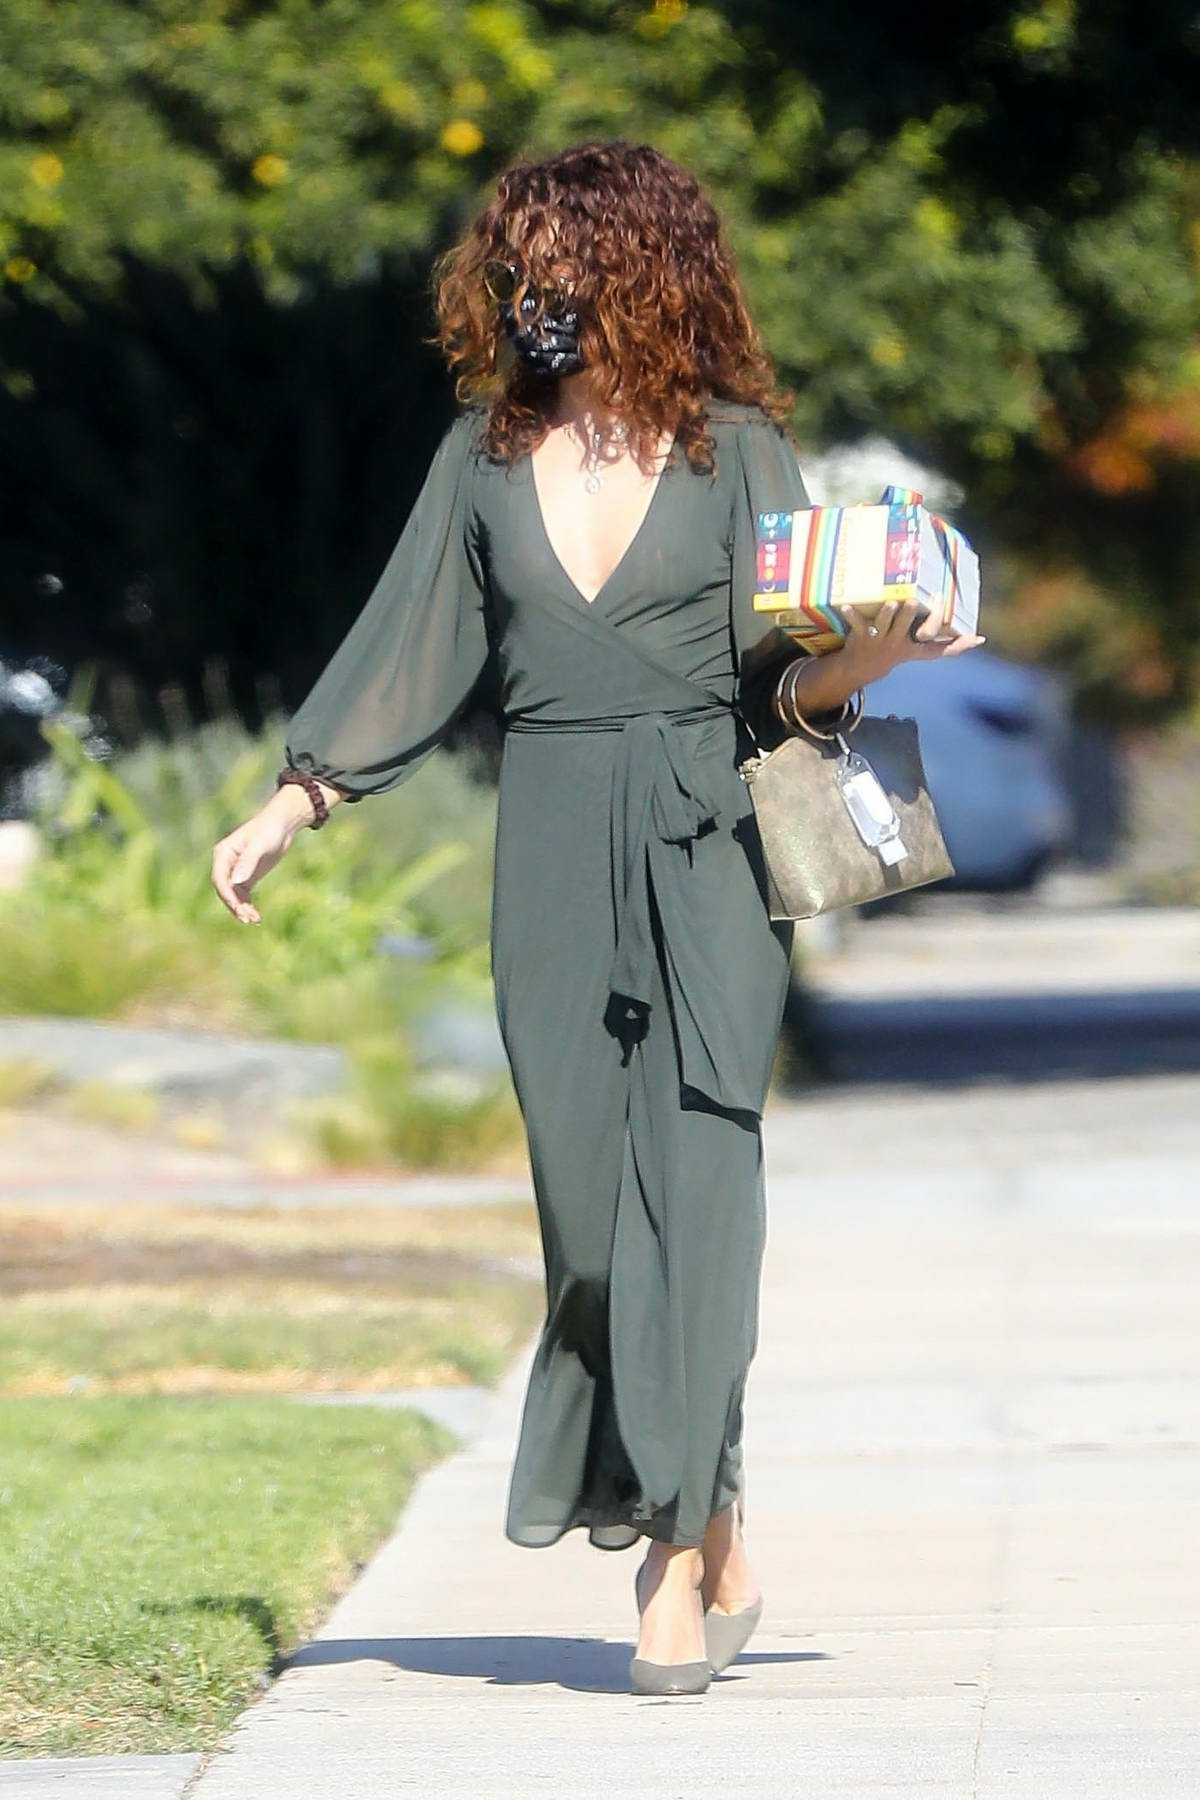 Sarah Hyland looks great in an olive green wrap dress as she attends a friend's birthday party in Los Angeles